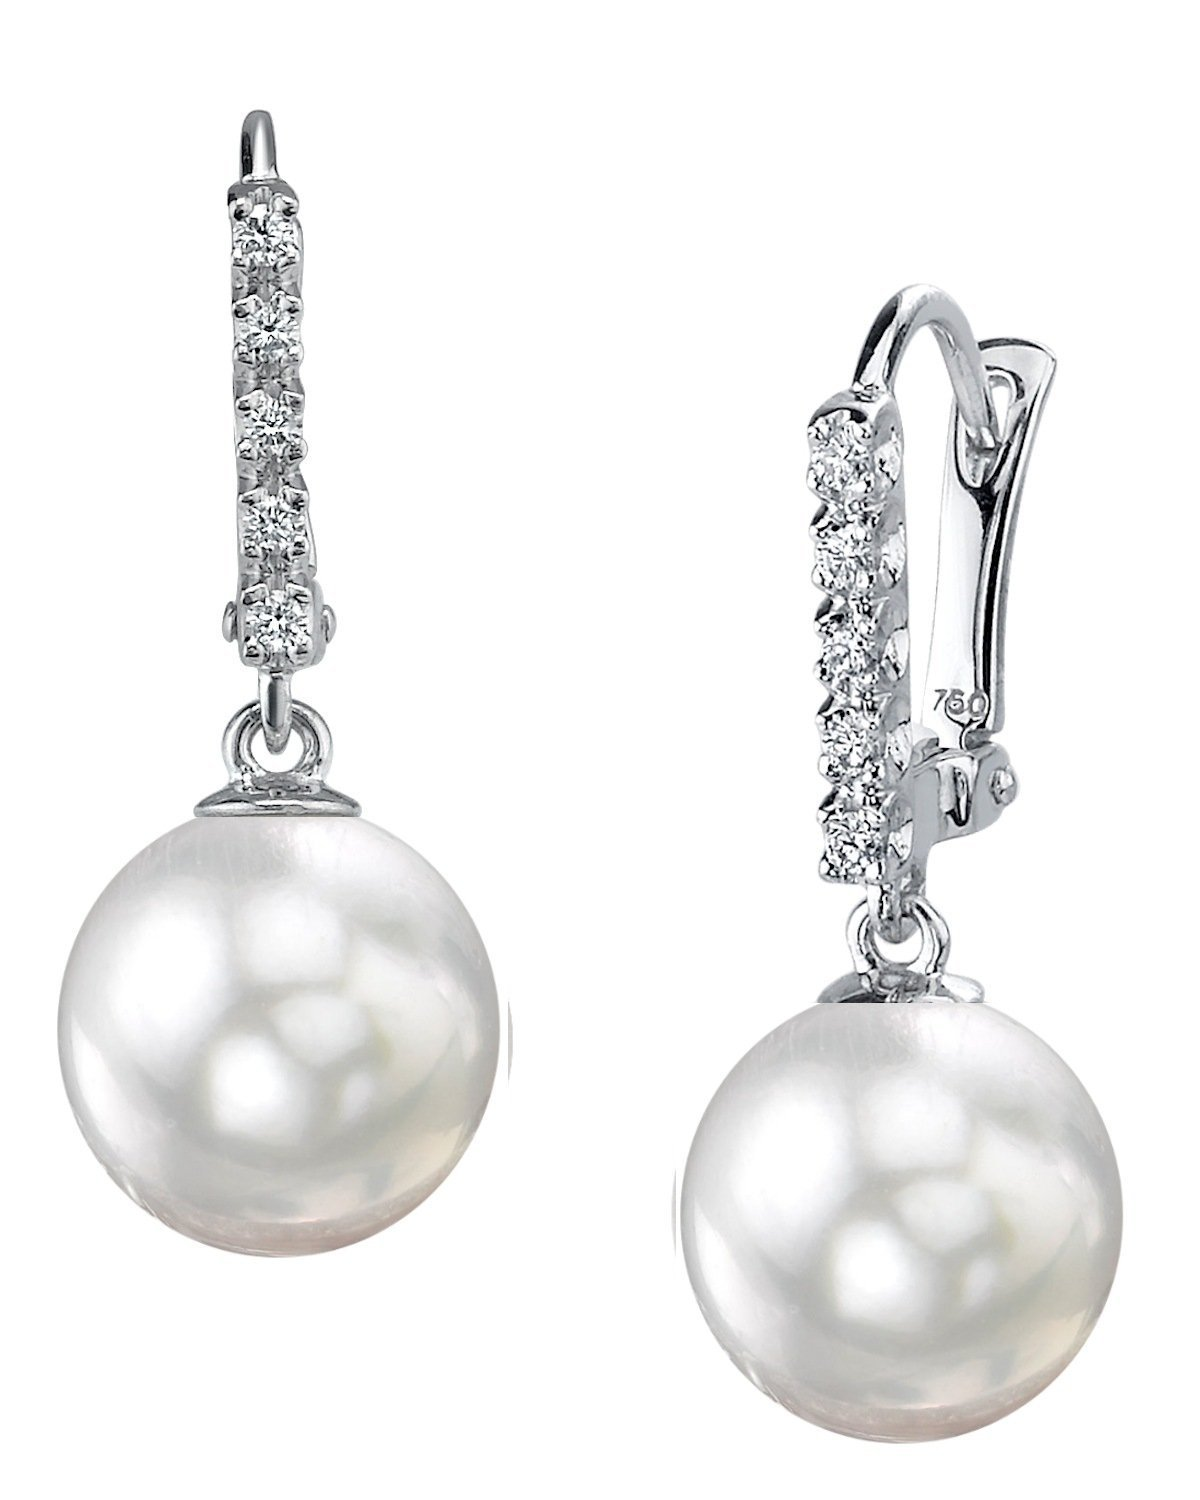 THE PEARL SOURCE 18K Gold 11-12mm Round Genuine White South Sea Cultured Pearl Britney Earrings for Women